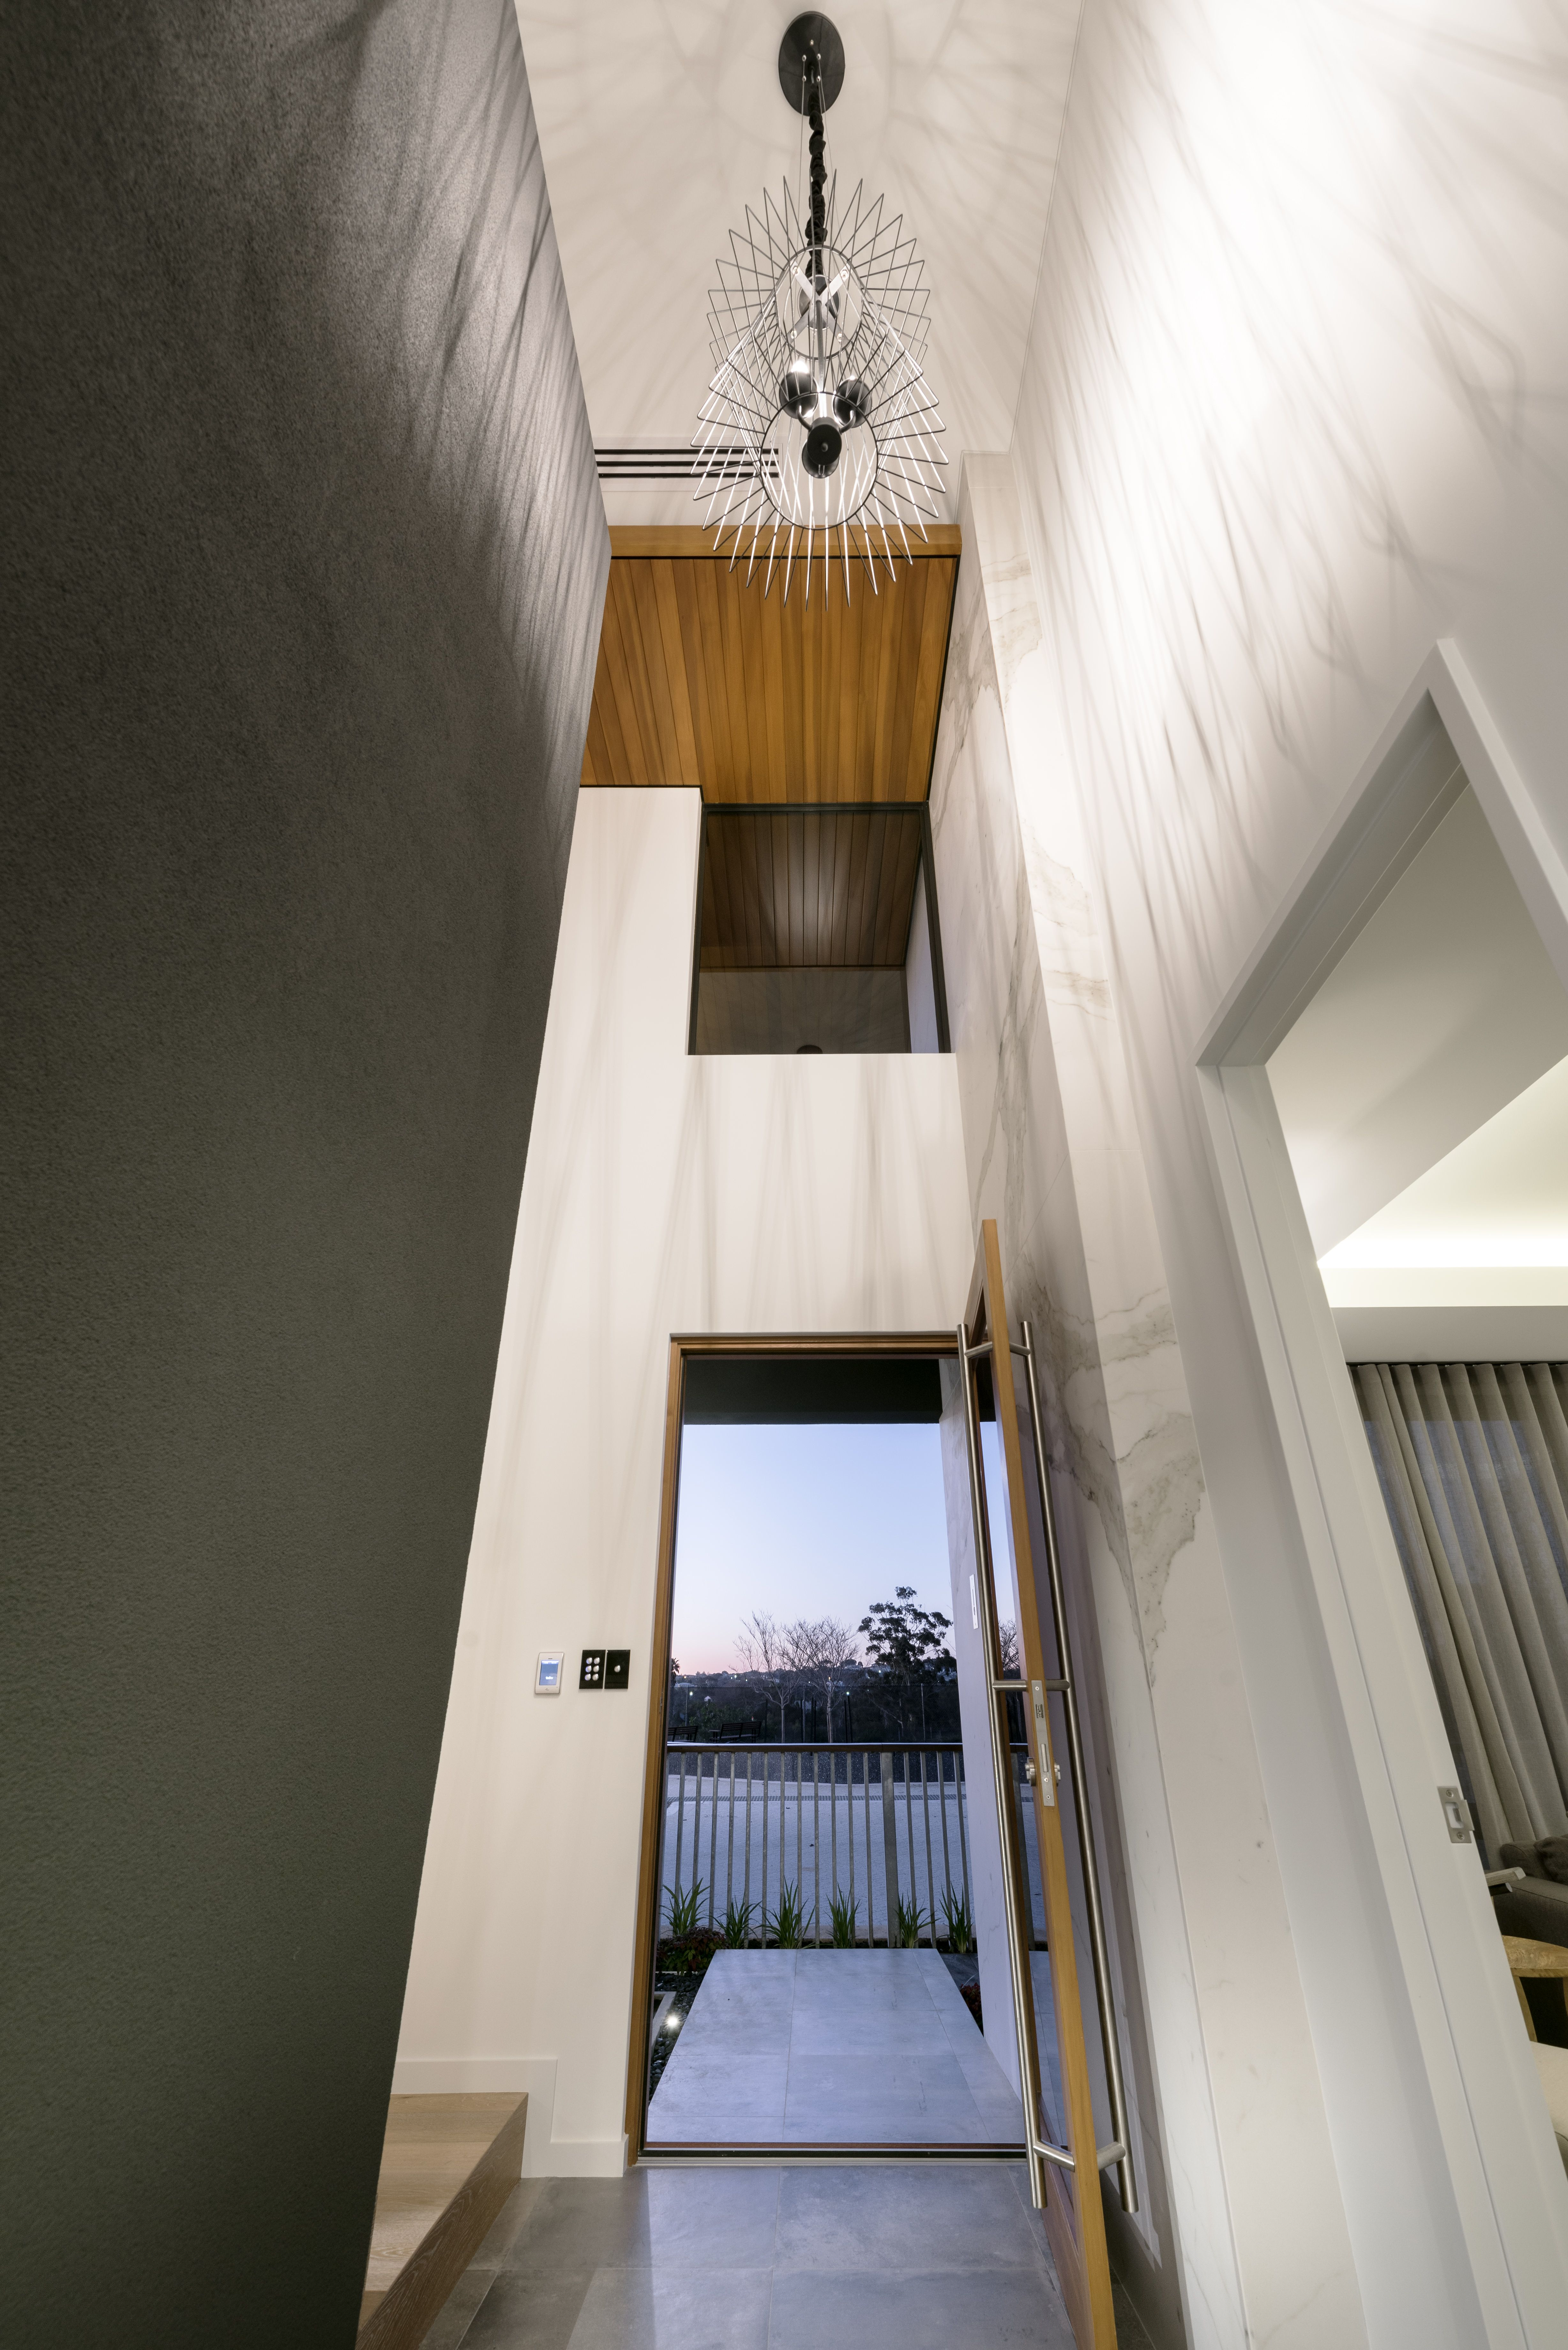 Wonderful Wall Cladding With Calacatta Matte Bella Marmi Series. An Exquisite Design  For A Home By Ideas